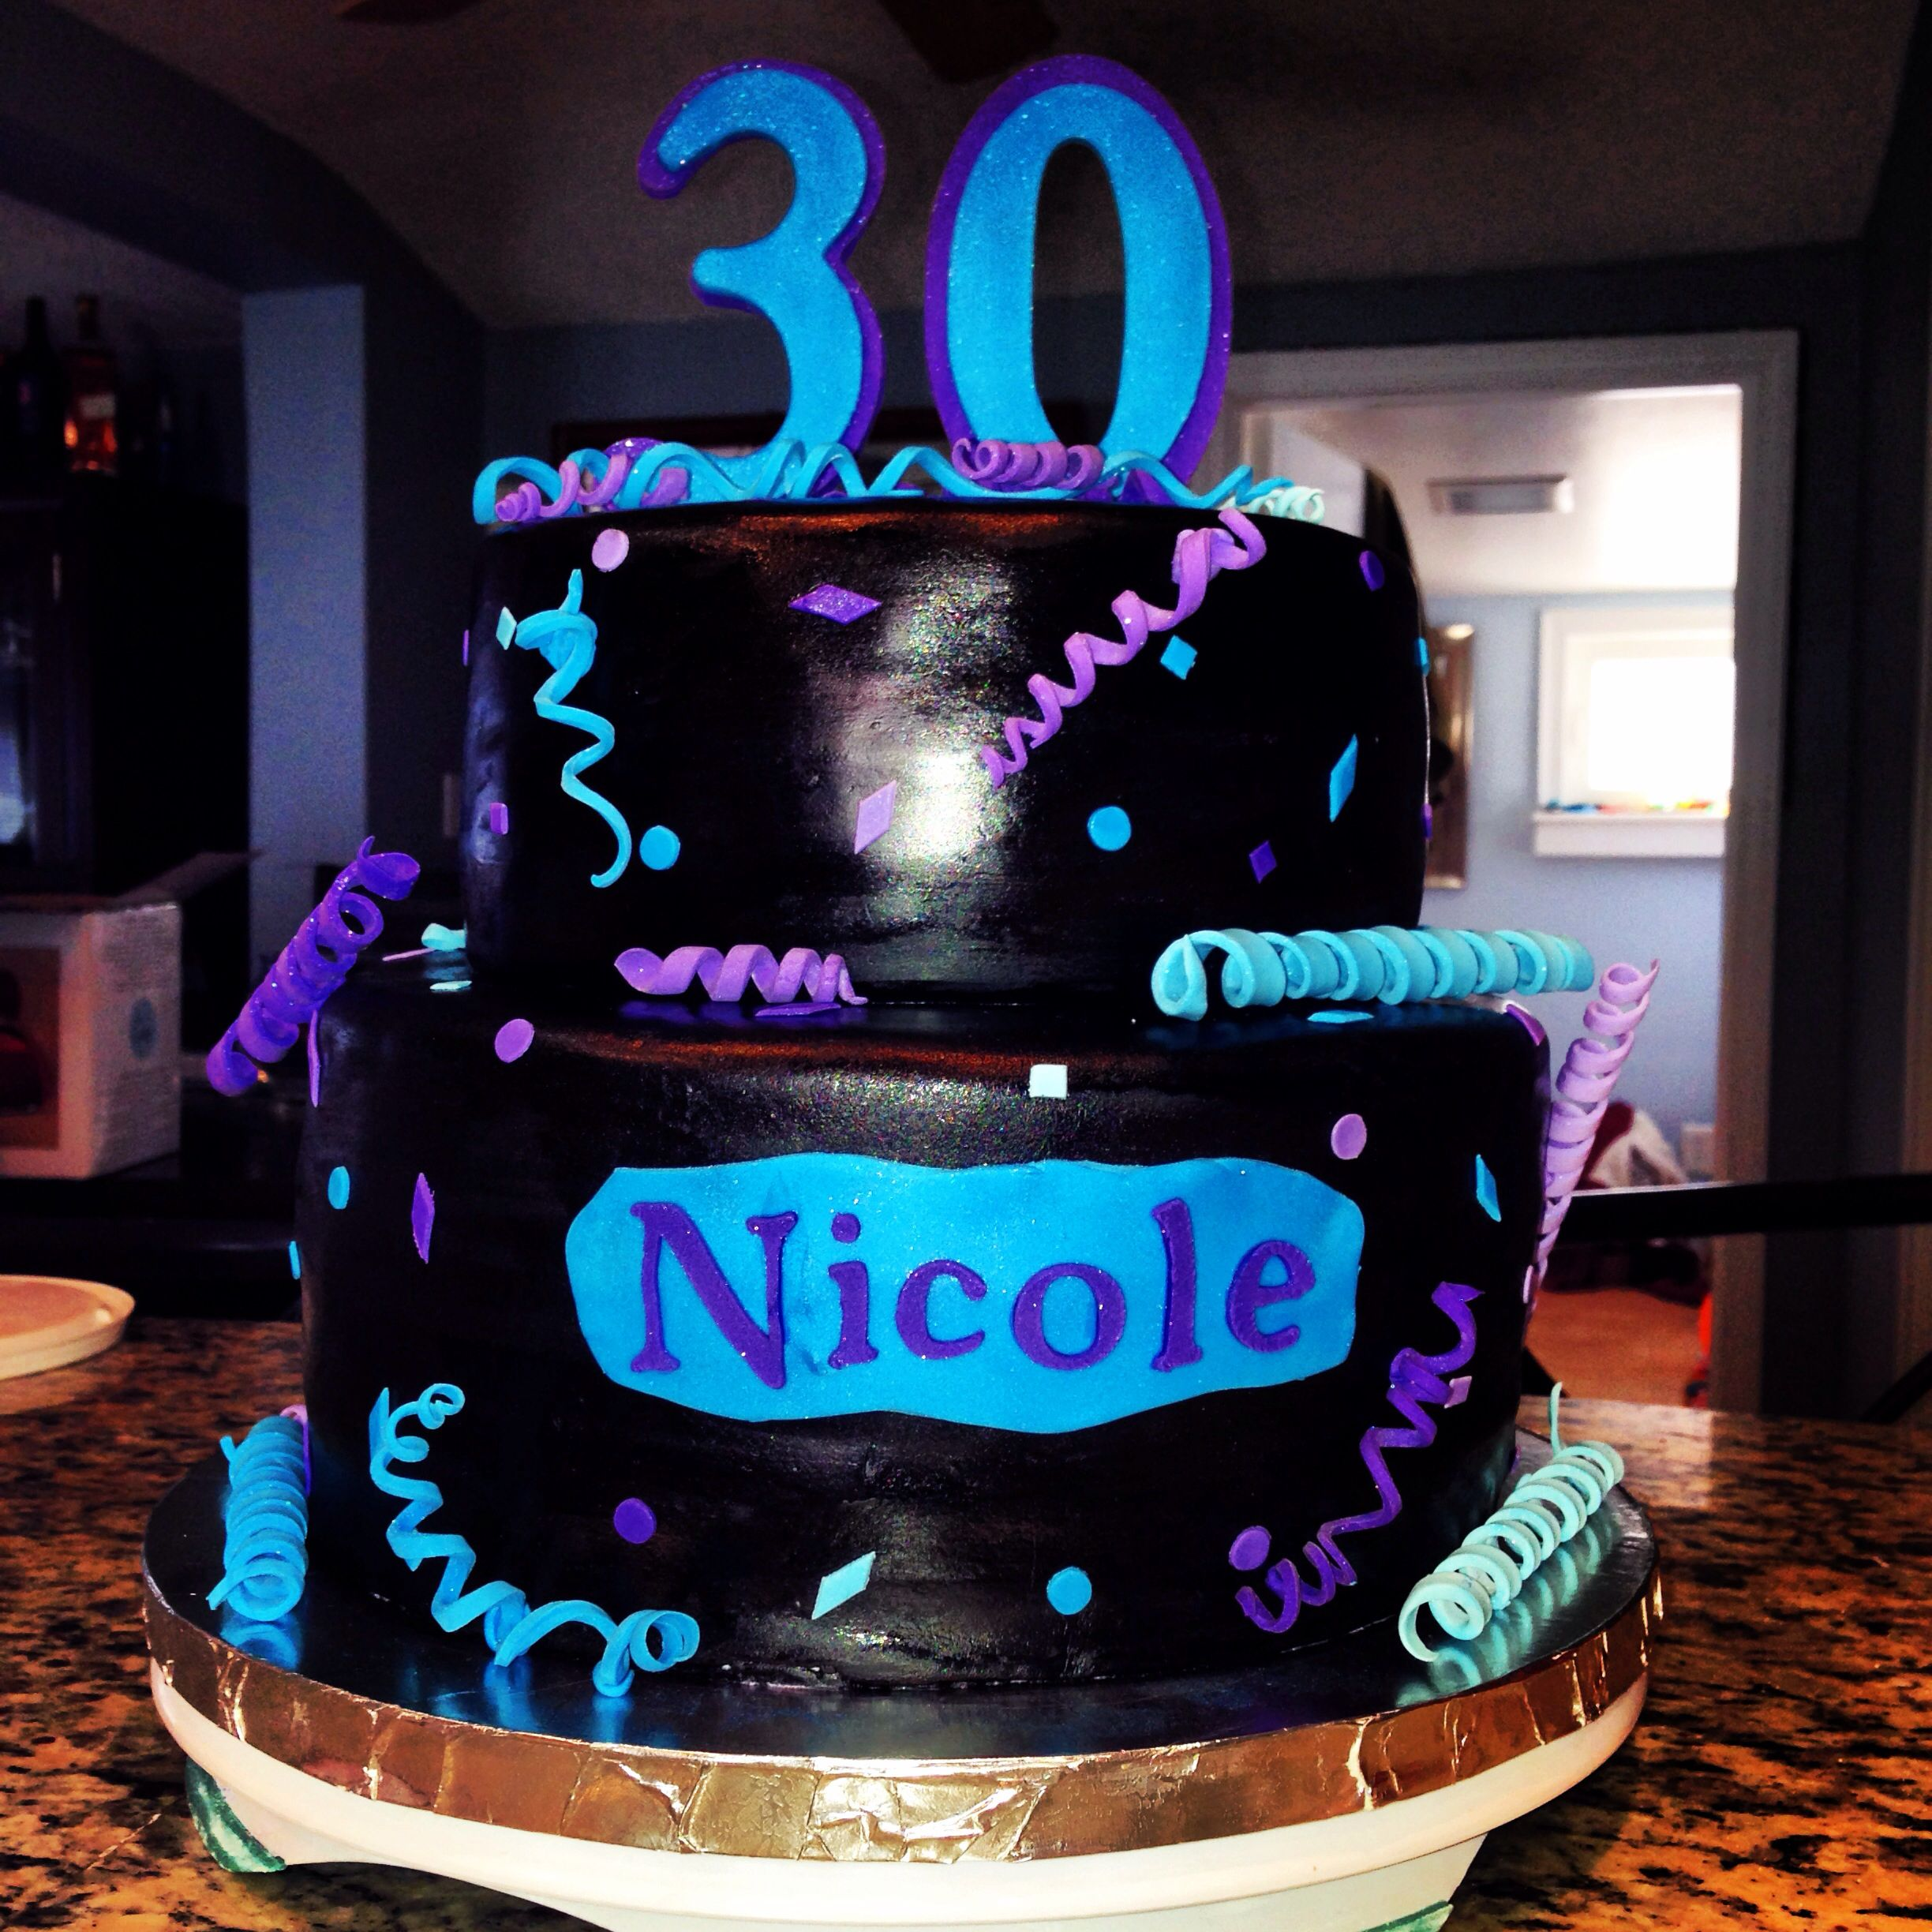 Cake Decorating Ideas For 30th Birthday : 30th birthday cake Cake Decorating Ideas Pinterest